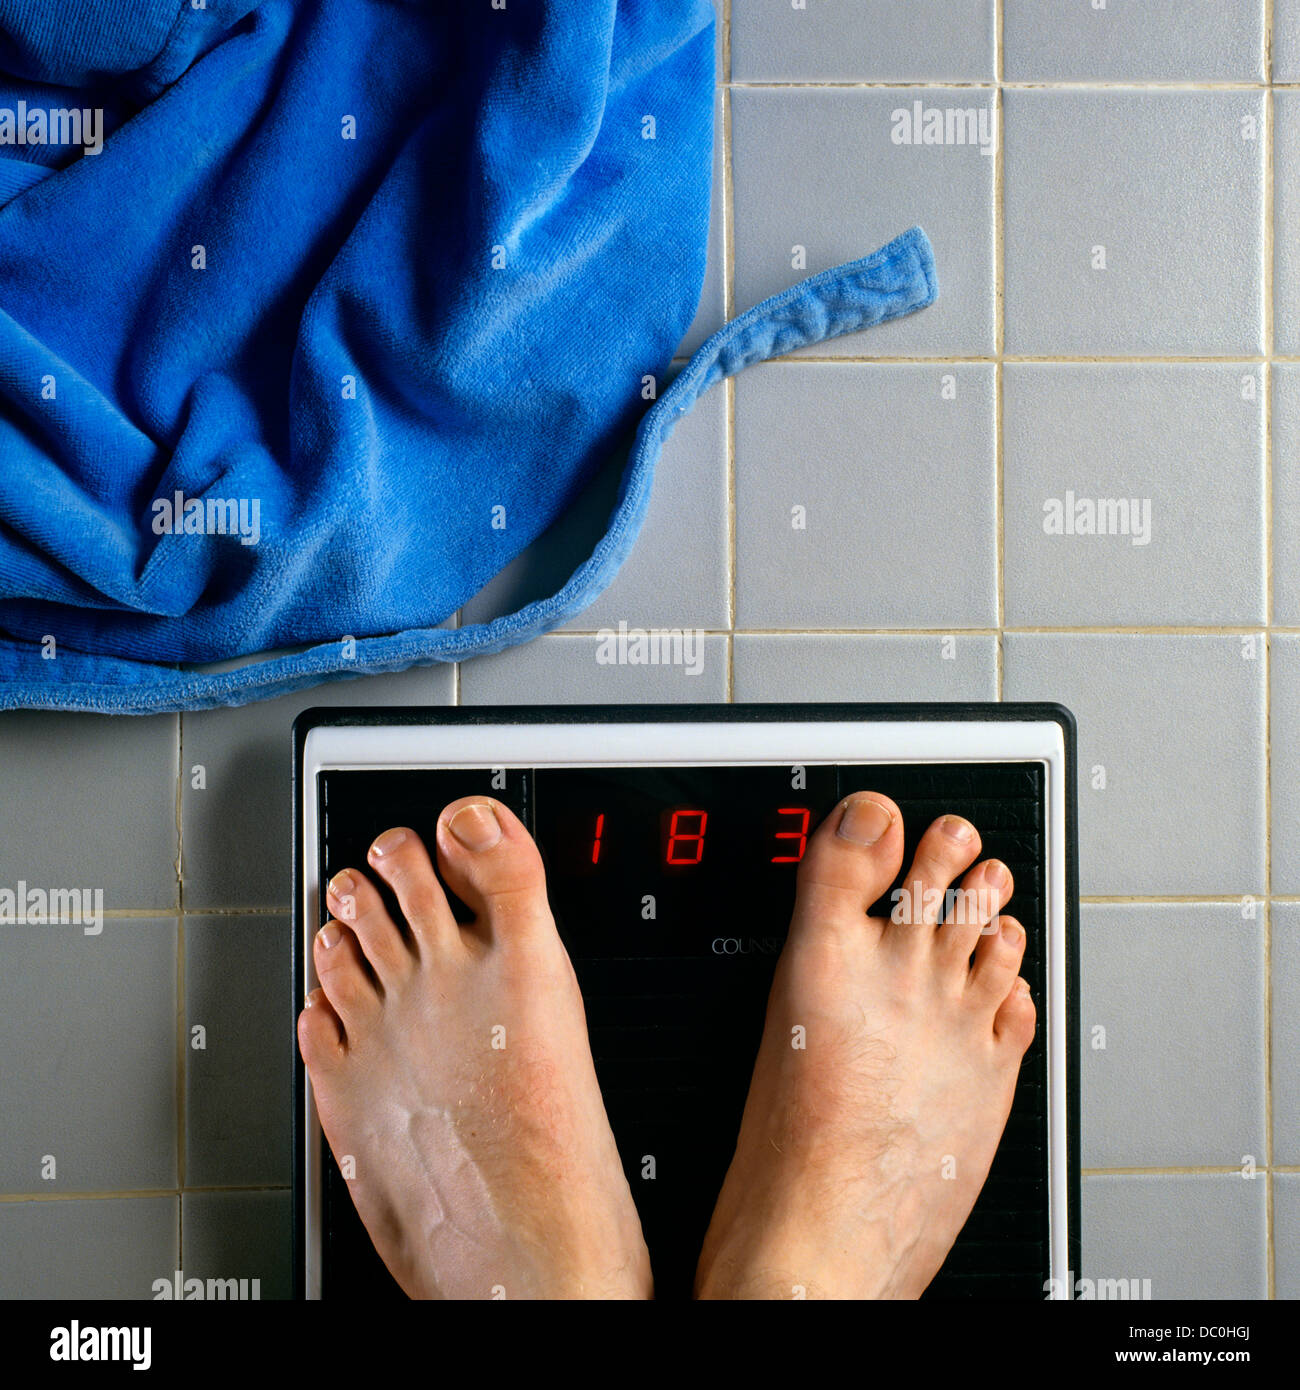 1990s Male Feet On Bathroom Scale Weight Of 183 Pounds Blue Terry Robe On Floor